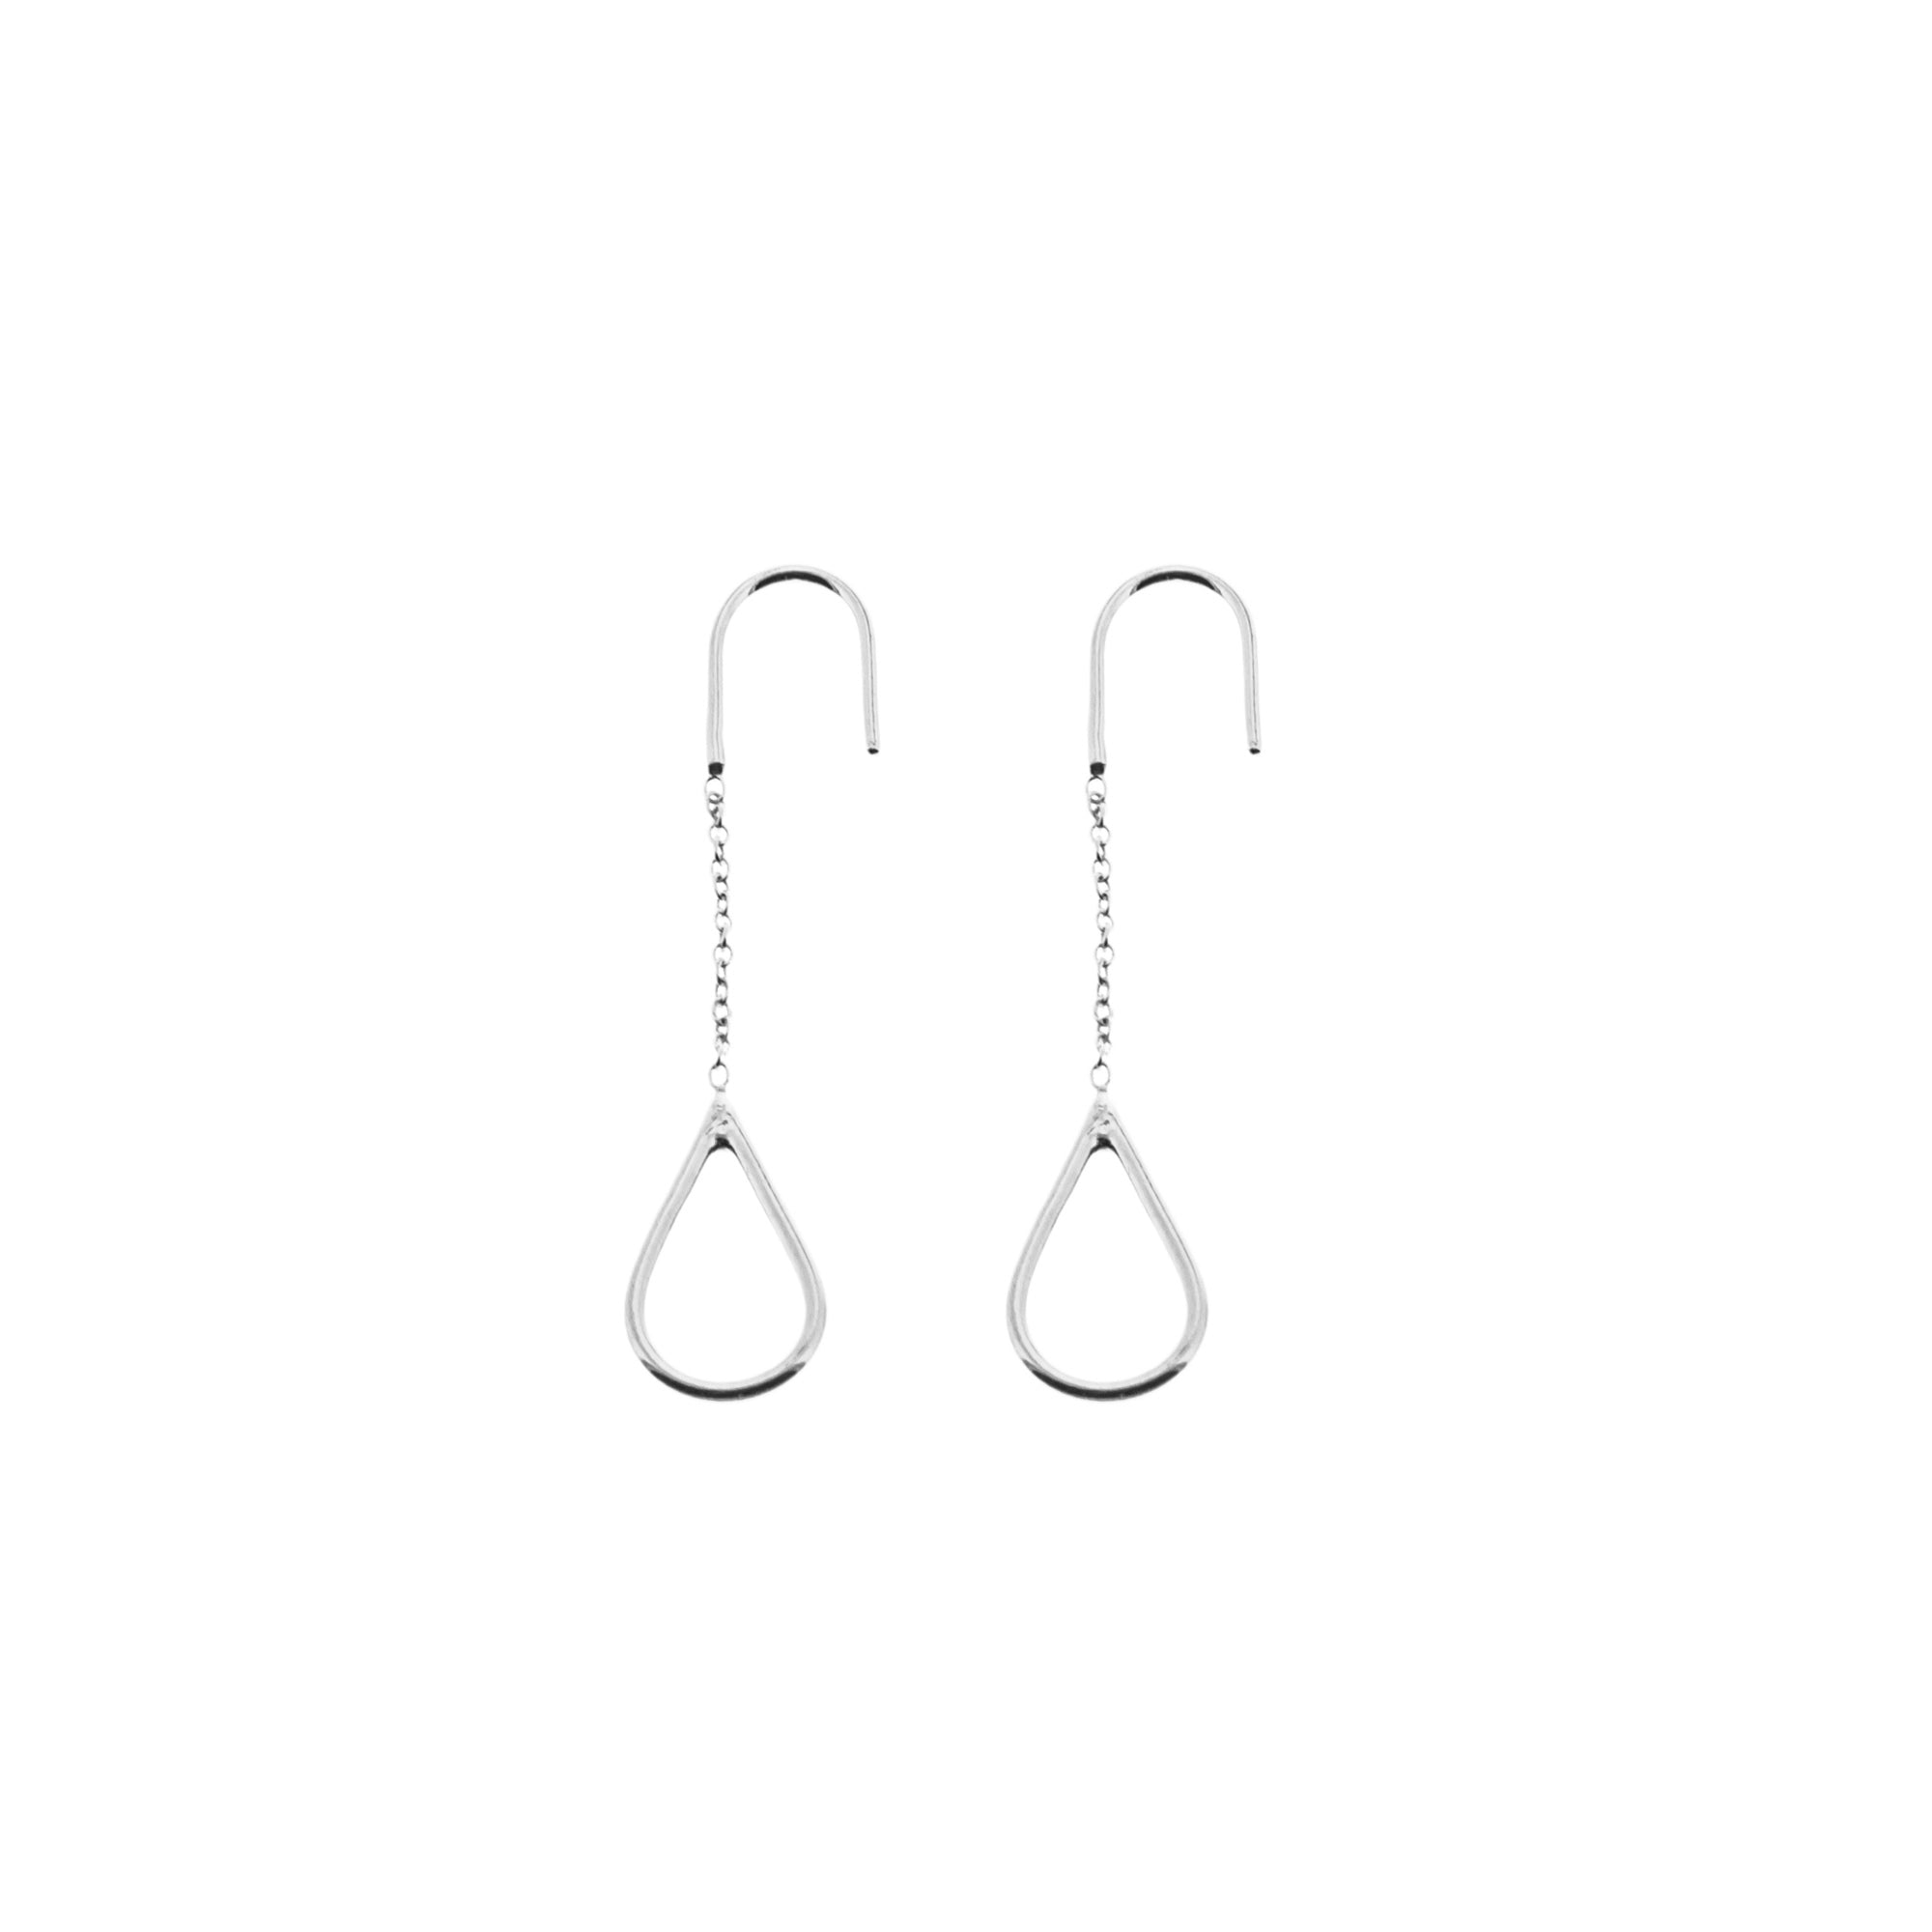 Aurore Havenne Silver Long Raindrops Earrings minimalist jewels bijou simple designer